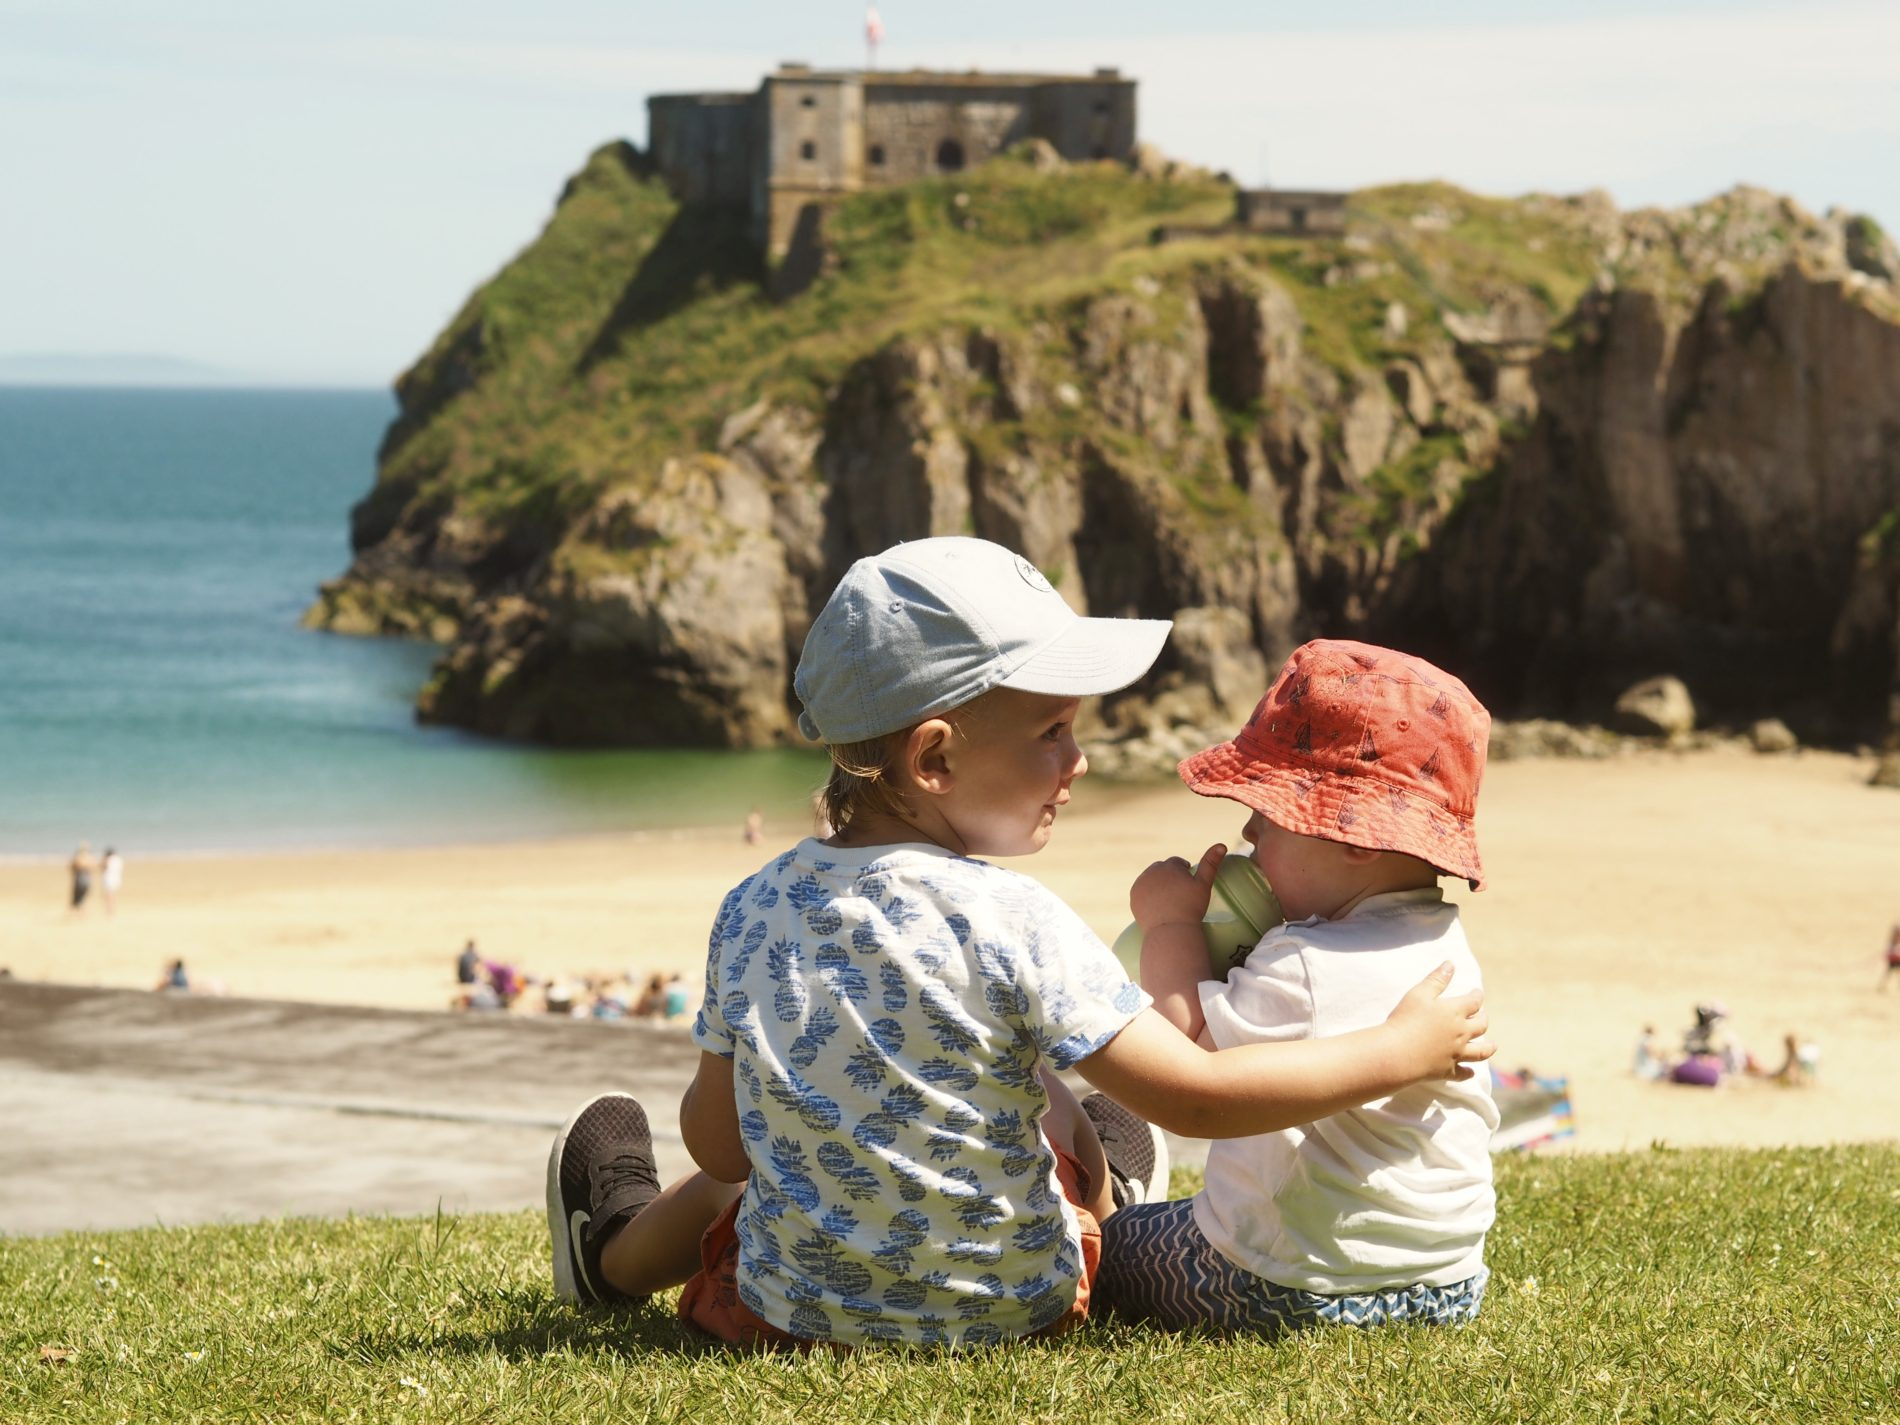 UK heatwave and an impromptu trip to Tenby